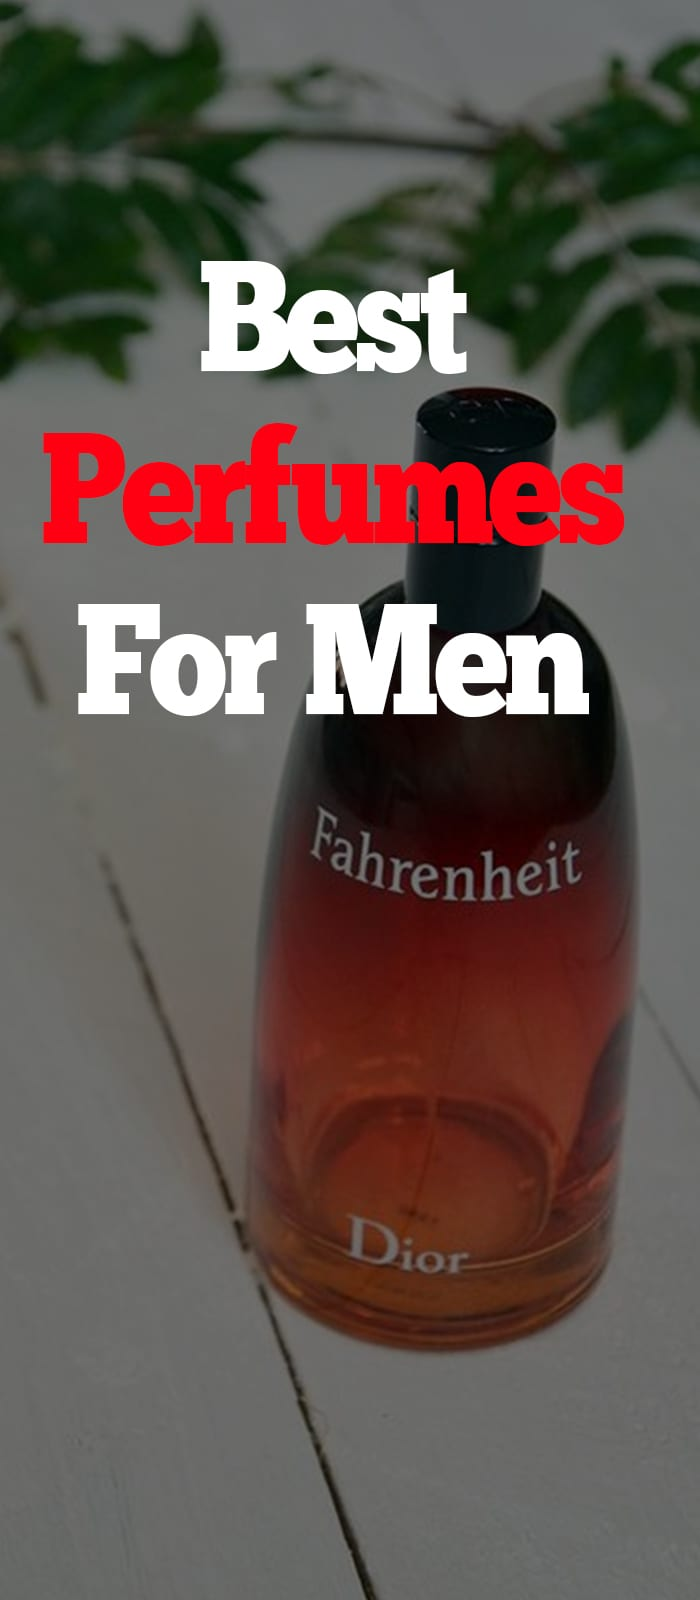 Dior Fahrenheit EDT Perfumes for Men to try